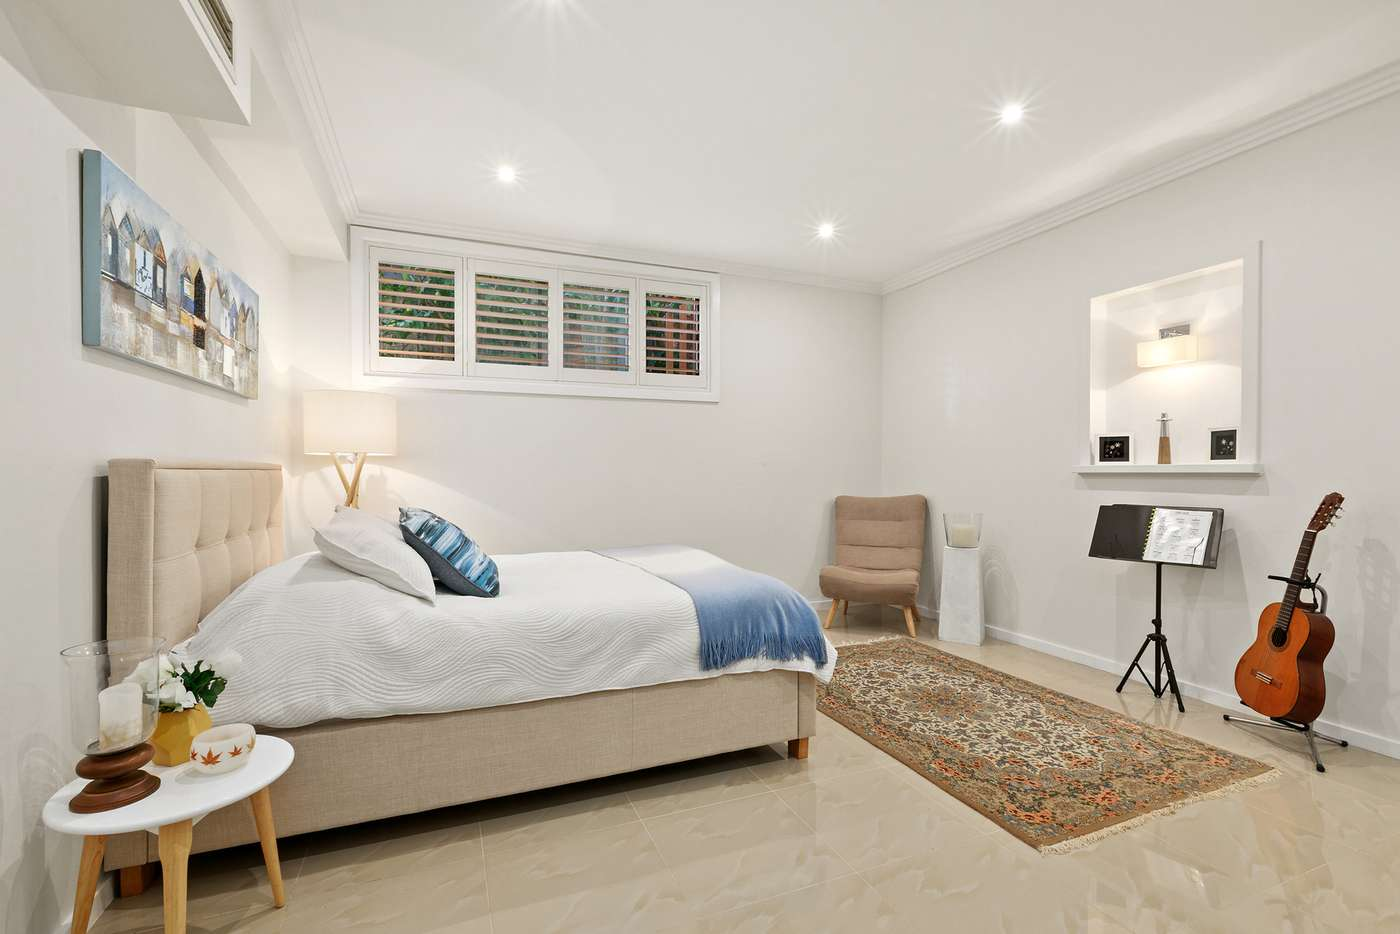 Sixth view of Homely house listing, 17 Murchison Street, St Ives NSW 2075